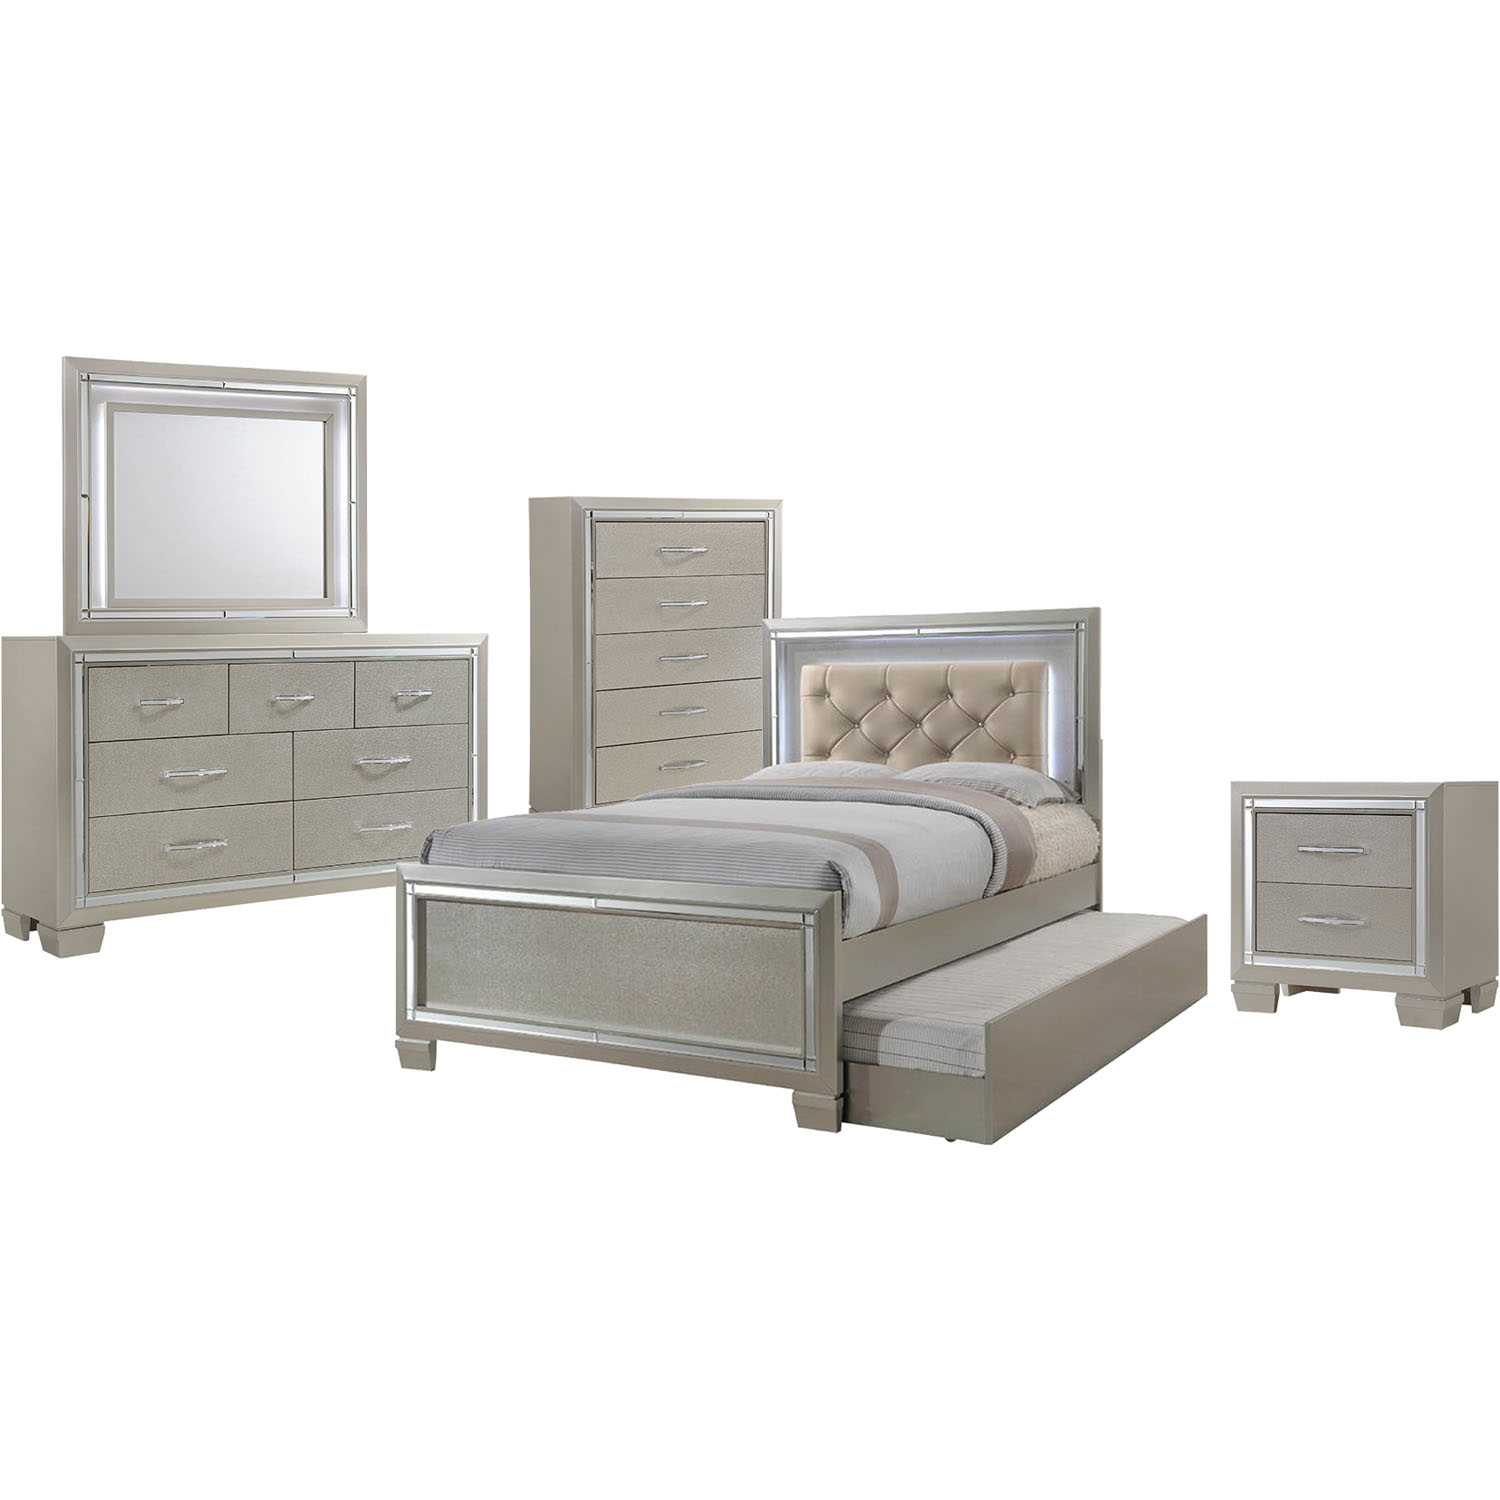 elegance 5pc full size bedroom suite 98117a5ft1 cm